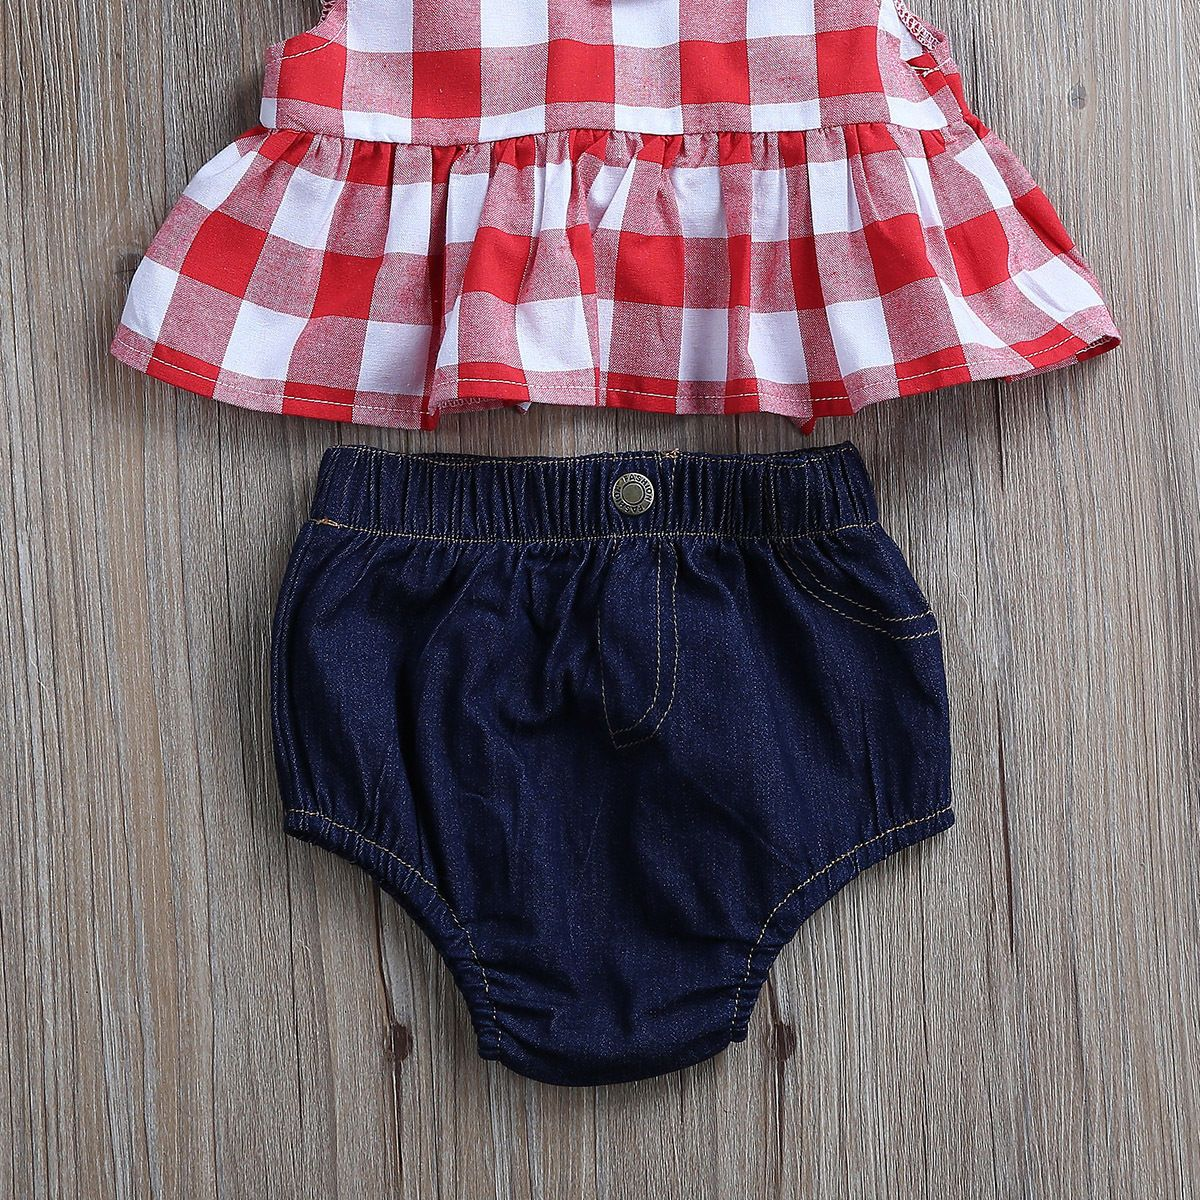 Infant Kids Baby Girls Outfit Sleeveless Tops Jeans Shorts Headband Kids  Outfits Children Toddler Girl Cute 30bdae346